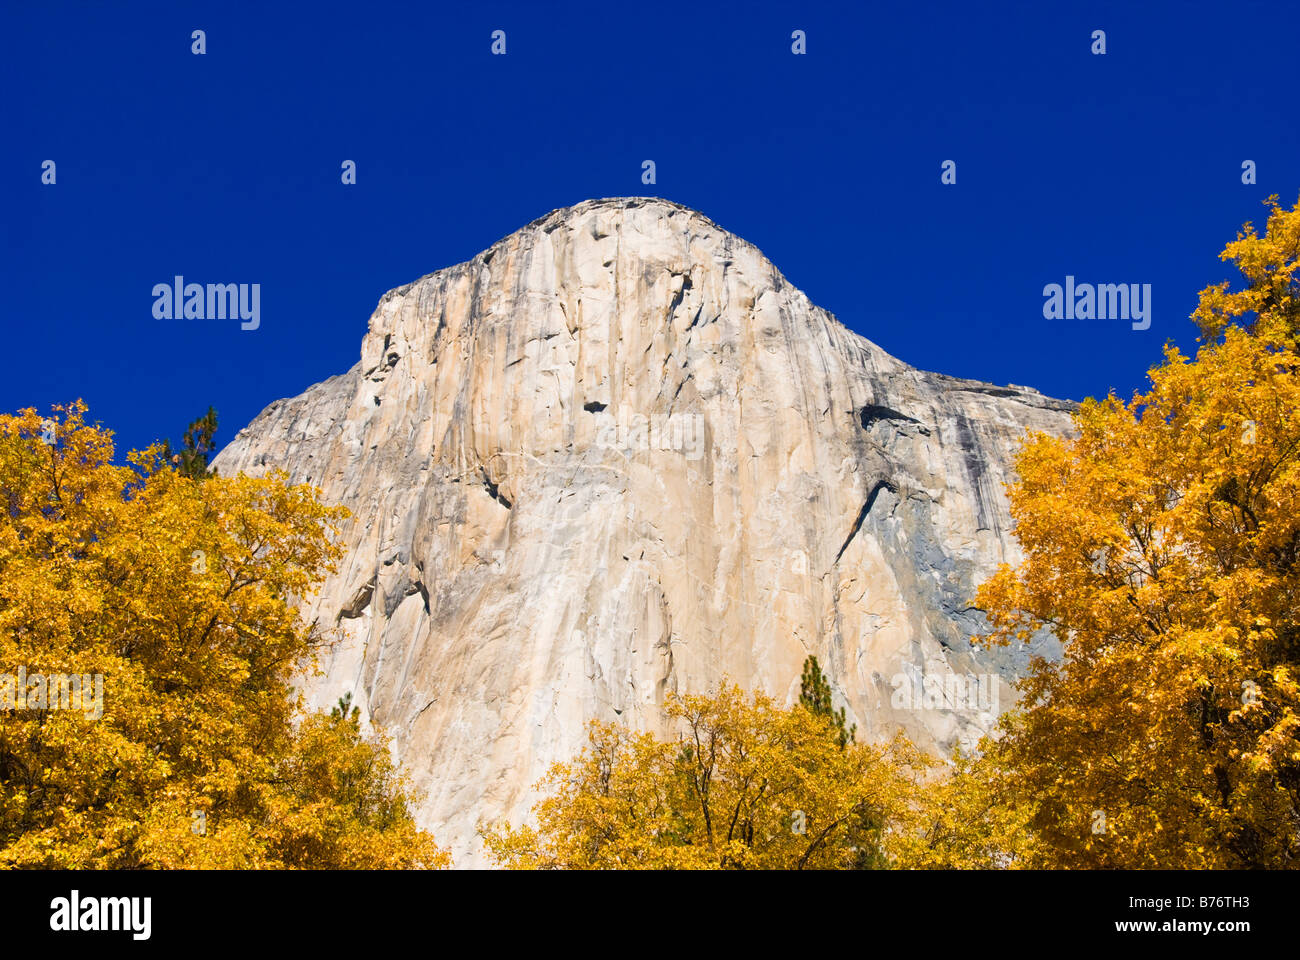 Fall color under El Capitan Yosemite Valley Yosemite National Park California Stock Photo